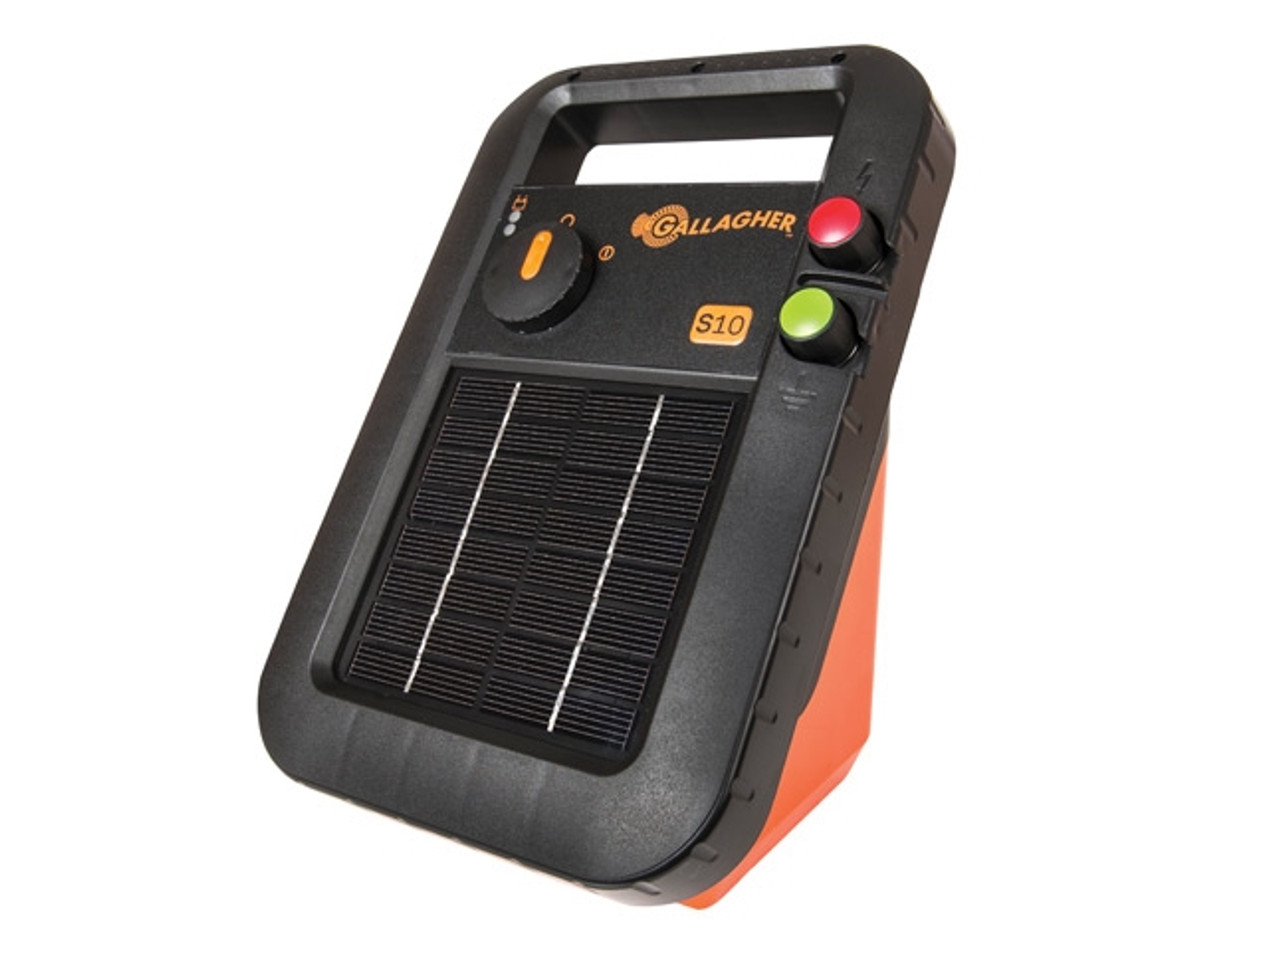 Gallagher S10 Solar Charger